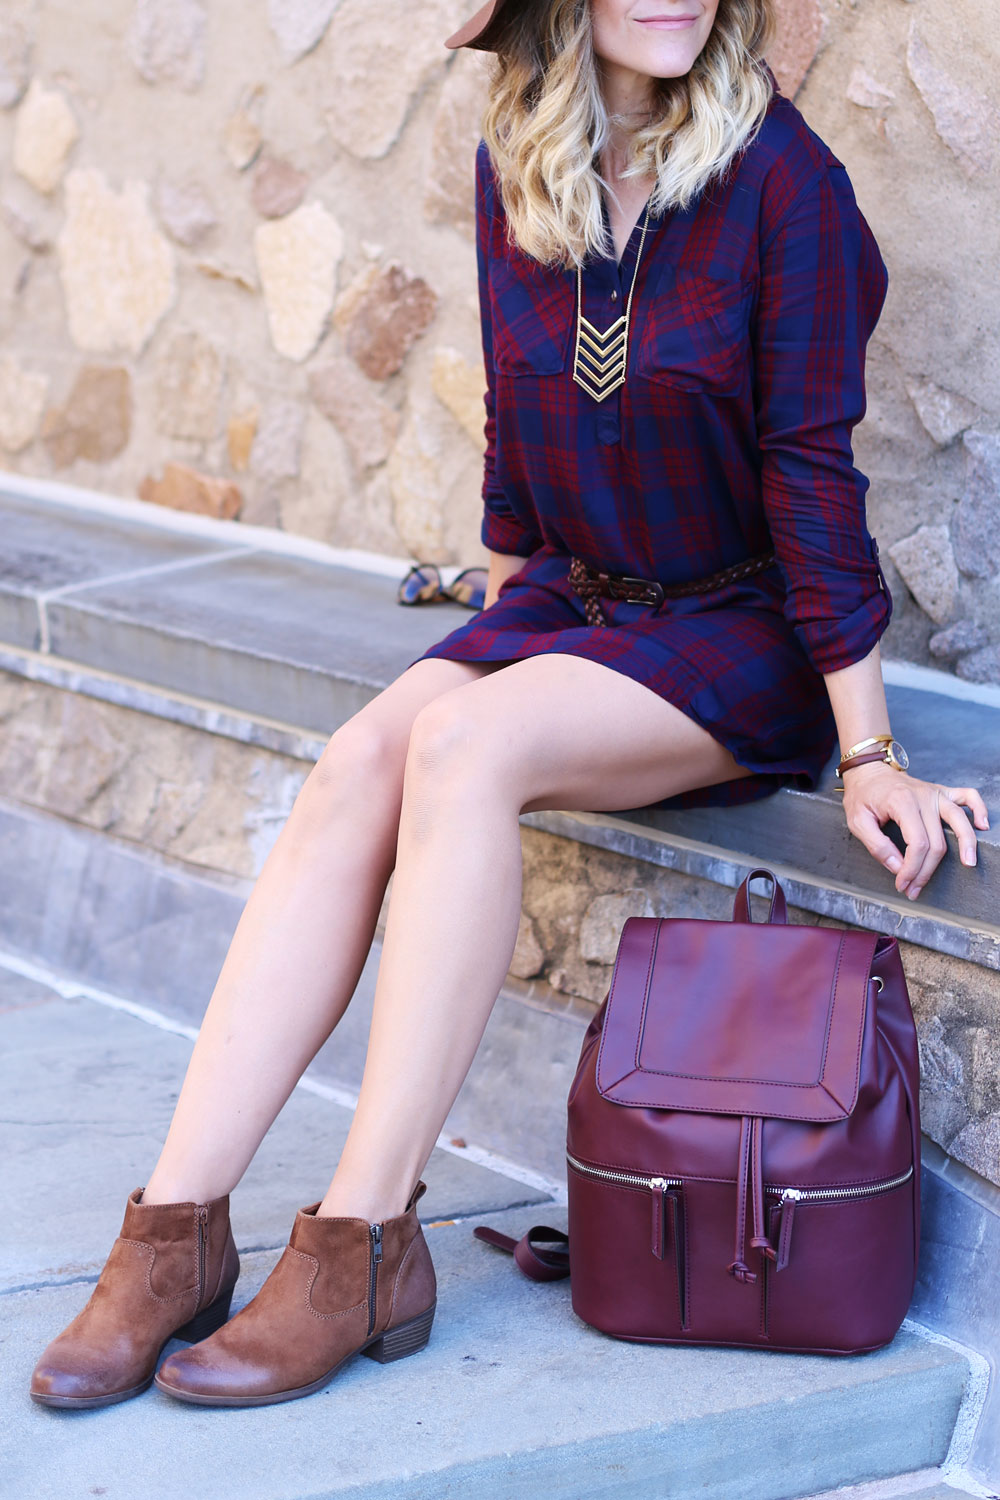 Plaid dress and ankle boots